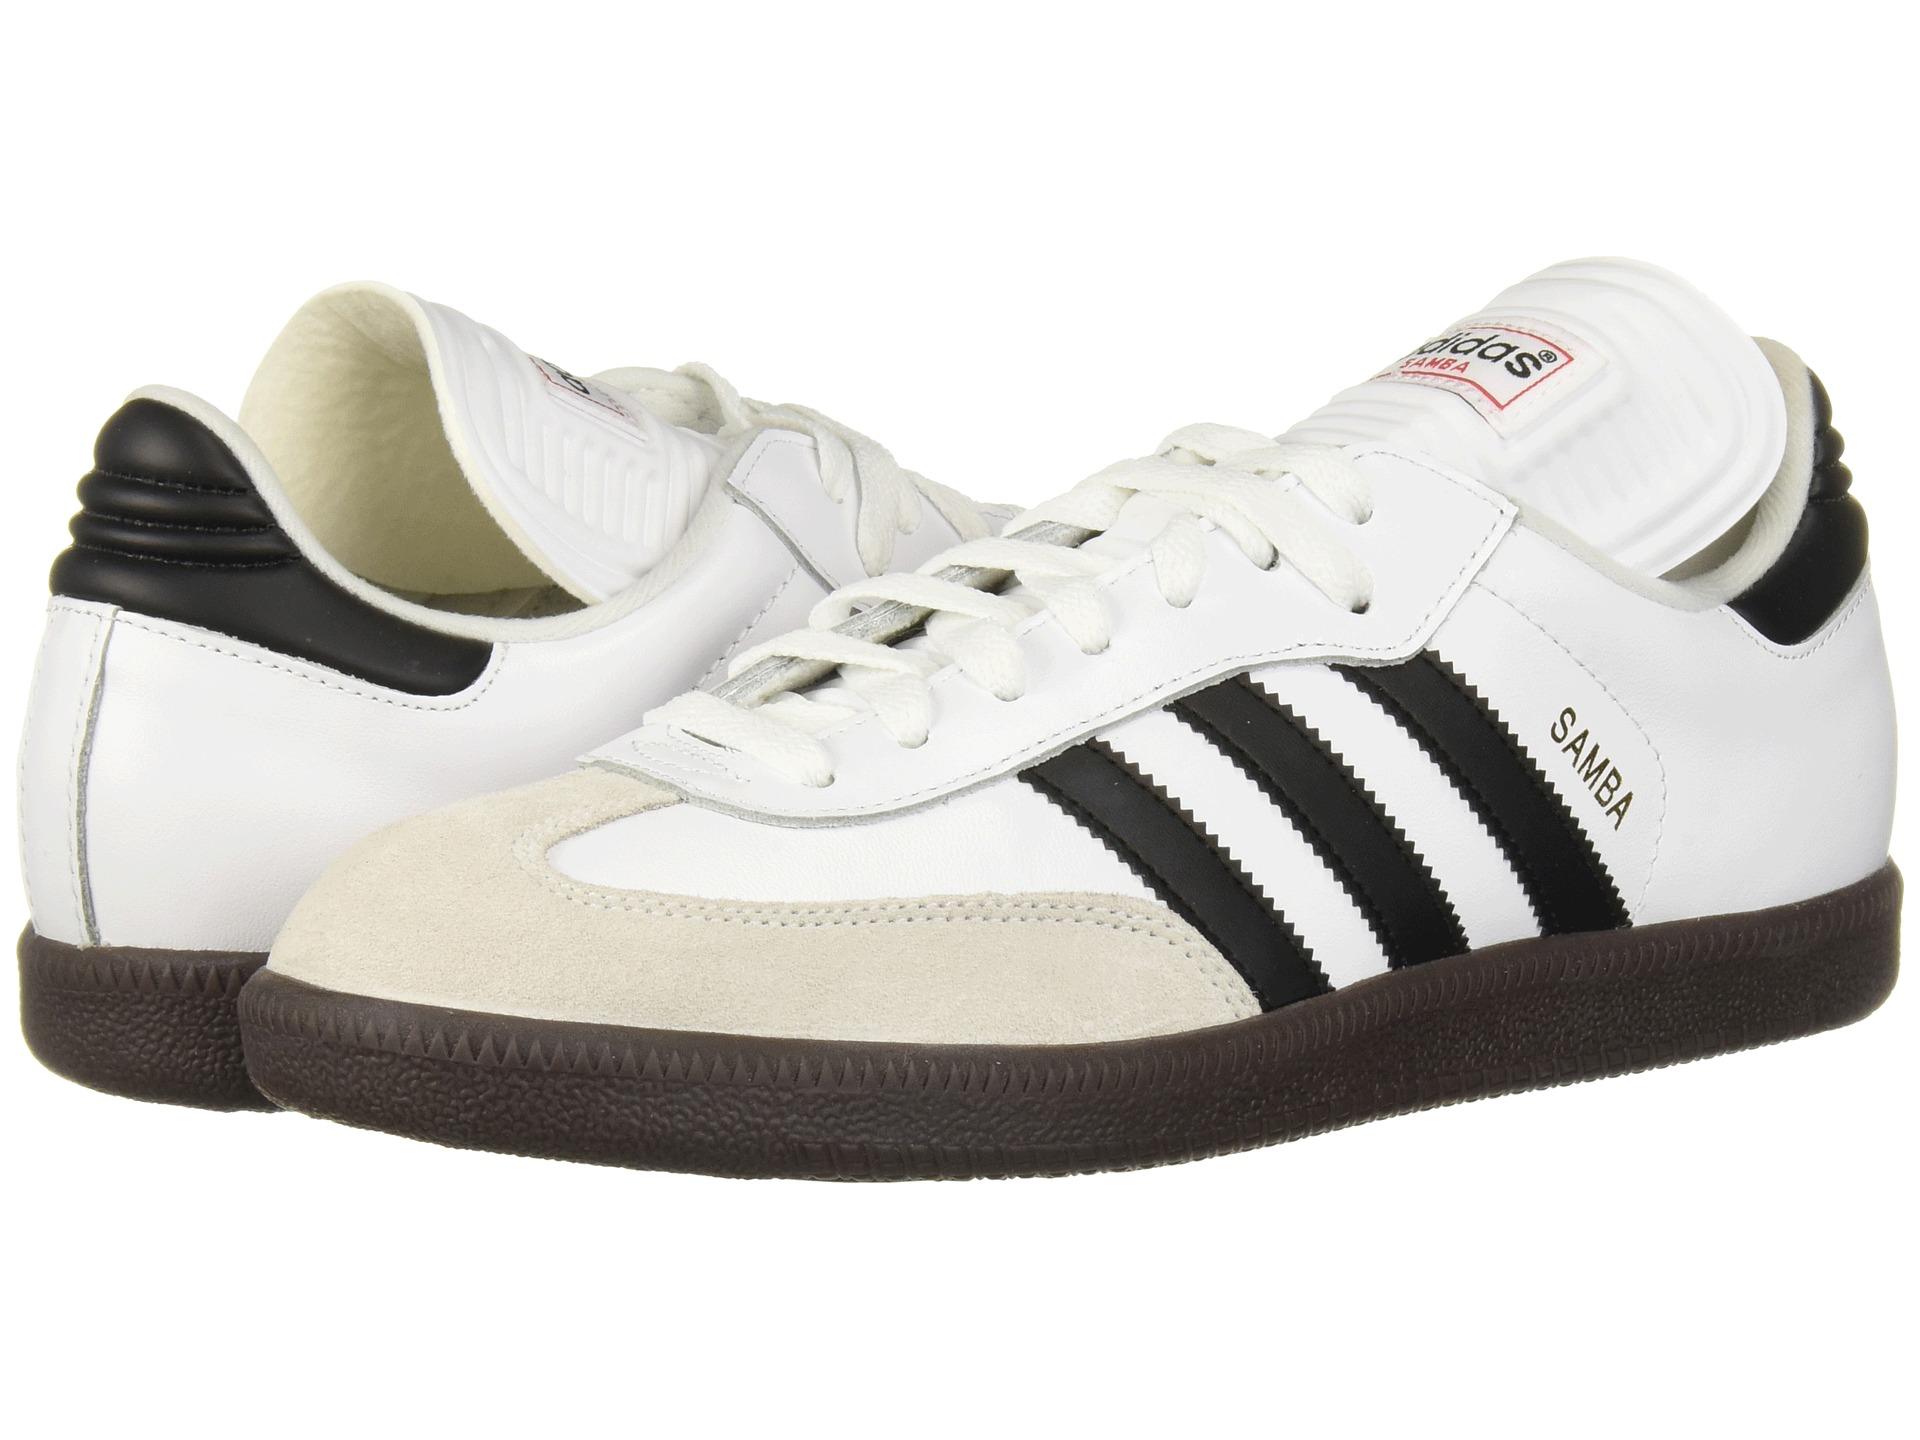 adidas samba soccer shoes